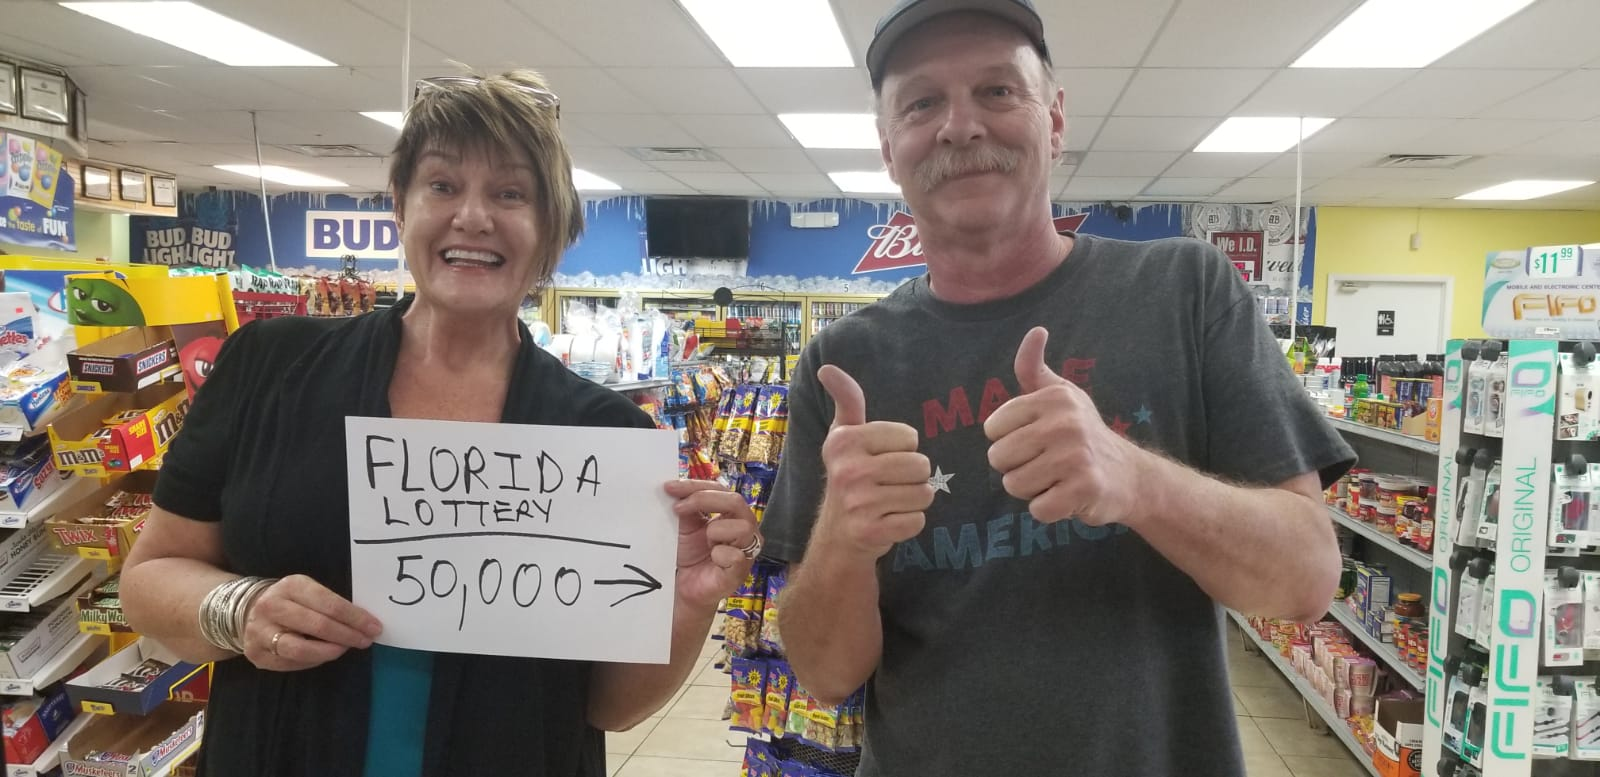 """Wanted to share my cool experience with all of you... 💵⠀ I popped into a local corner store to buy a lottery ticket - hey, a girl's gotta secure her old age pension somehow if she can't make the New YORK BEST SELLERs List - when the man in front of me EXPLODED with joy! He said, """"2 days ago I won $50,000 on a $3 scratch and win"""". I swear the joy was coming out of his every pore. I said, """"What will you do with your money?"""" This man, Charles, said, """"I am going to pay my rent a year in advance... buy four new tires for my truck... a big ass TV... and I've had a broken tooth for a while so now I can go to the dentist"""". Bless him a million times. His joy will live with me for weeks. XX⠀"""